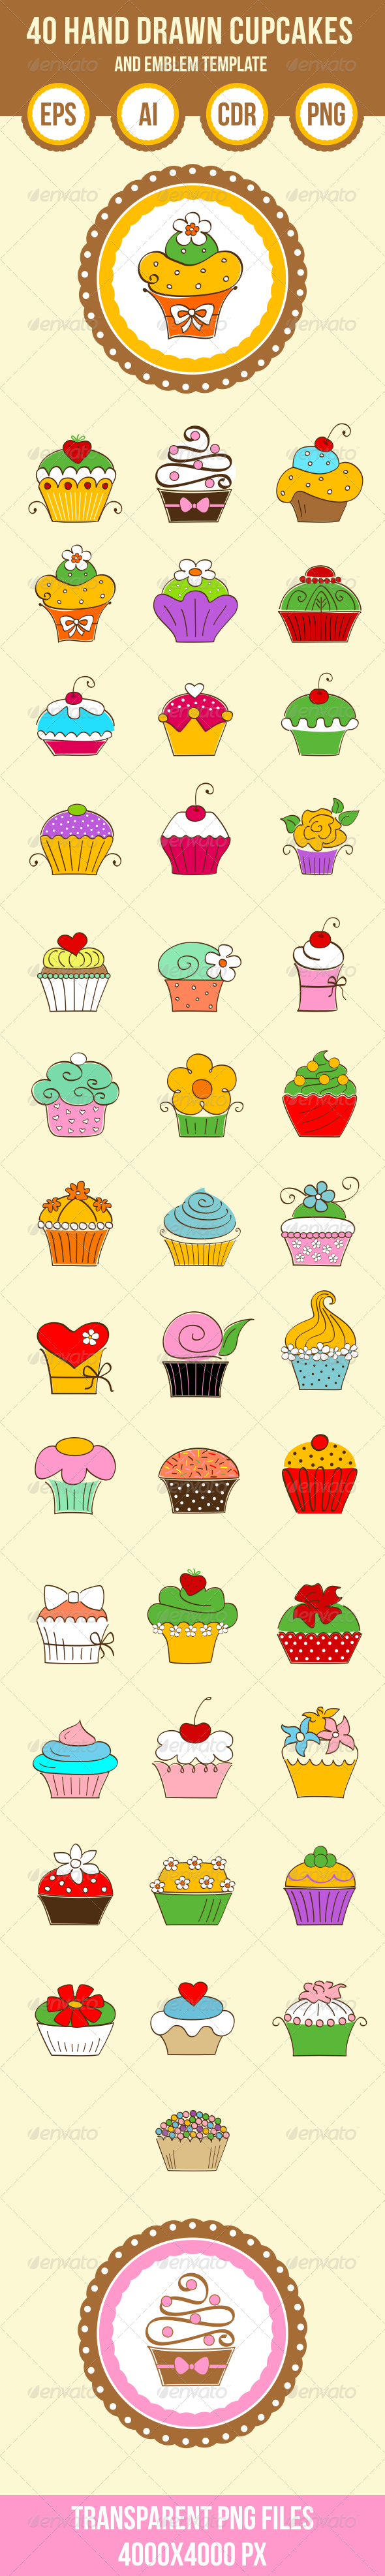 40 Hand Drawn Cupcakes and Emblem Shape